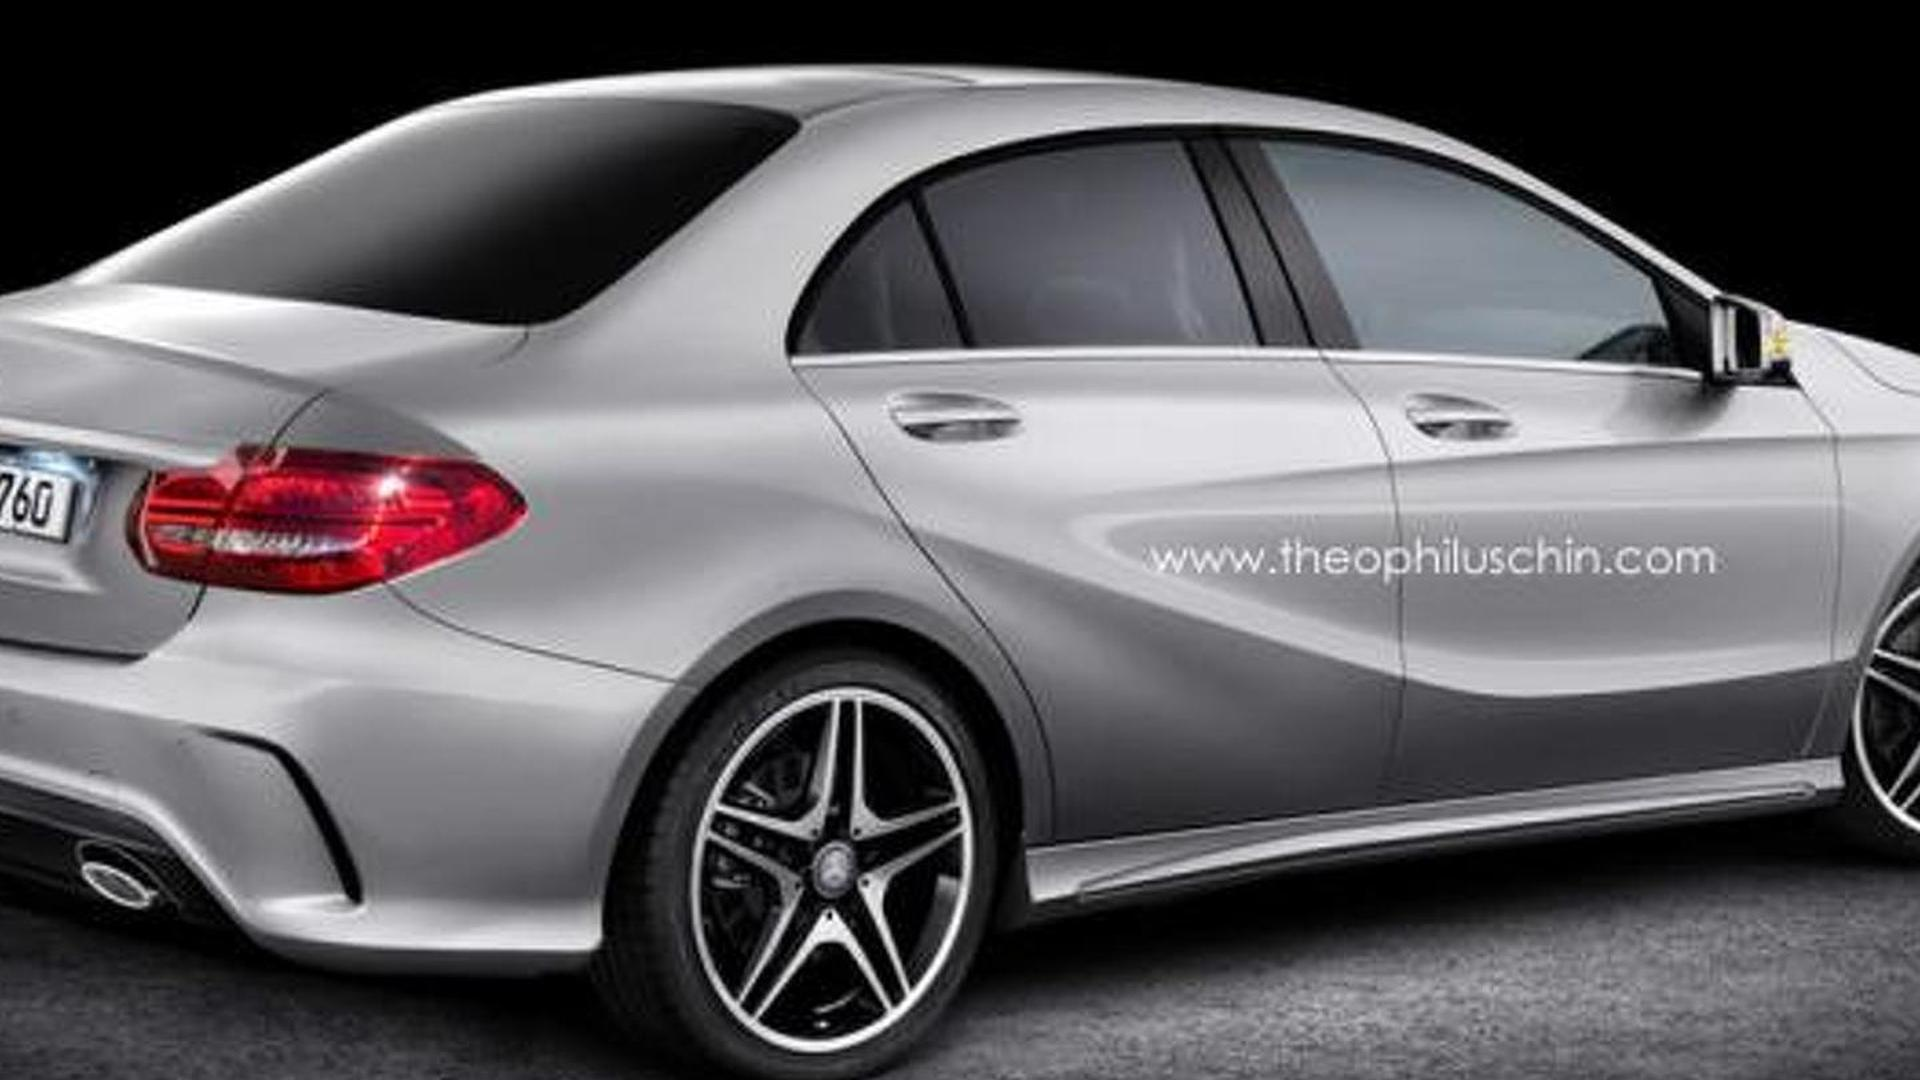 Mercedes-Benz A-Class Sedan envisioned as a smaller and cheaper CLA